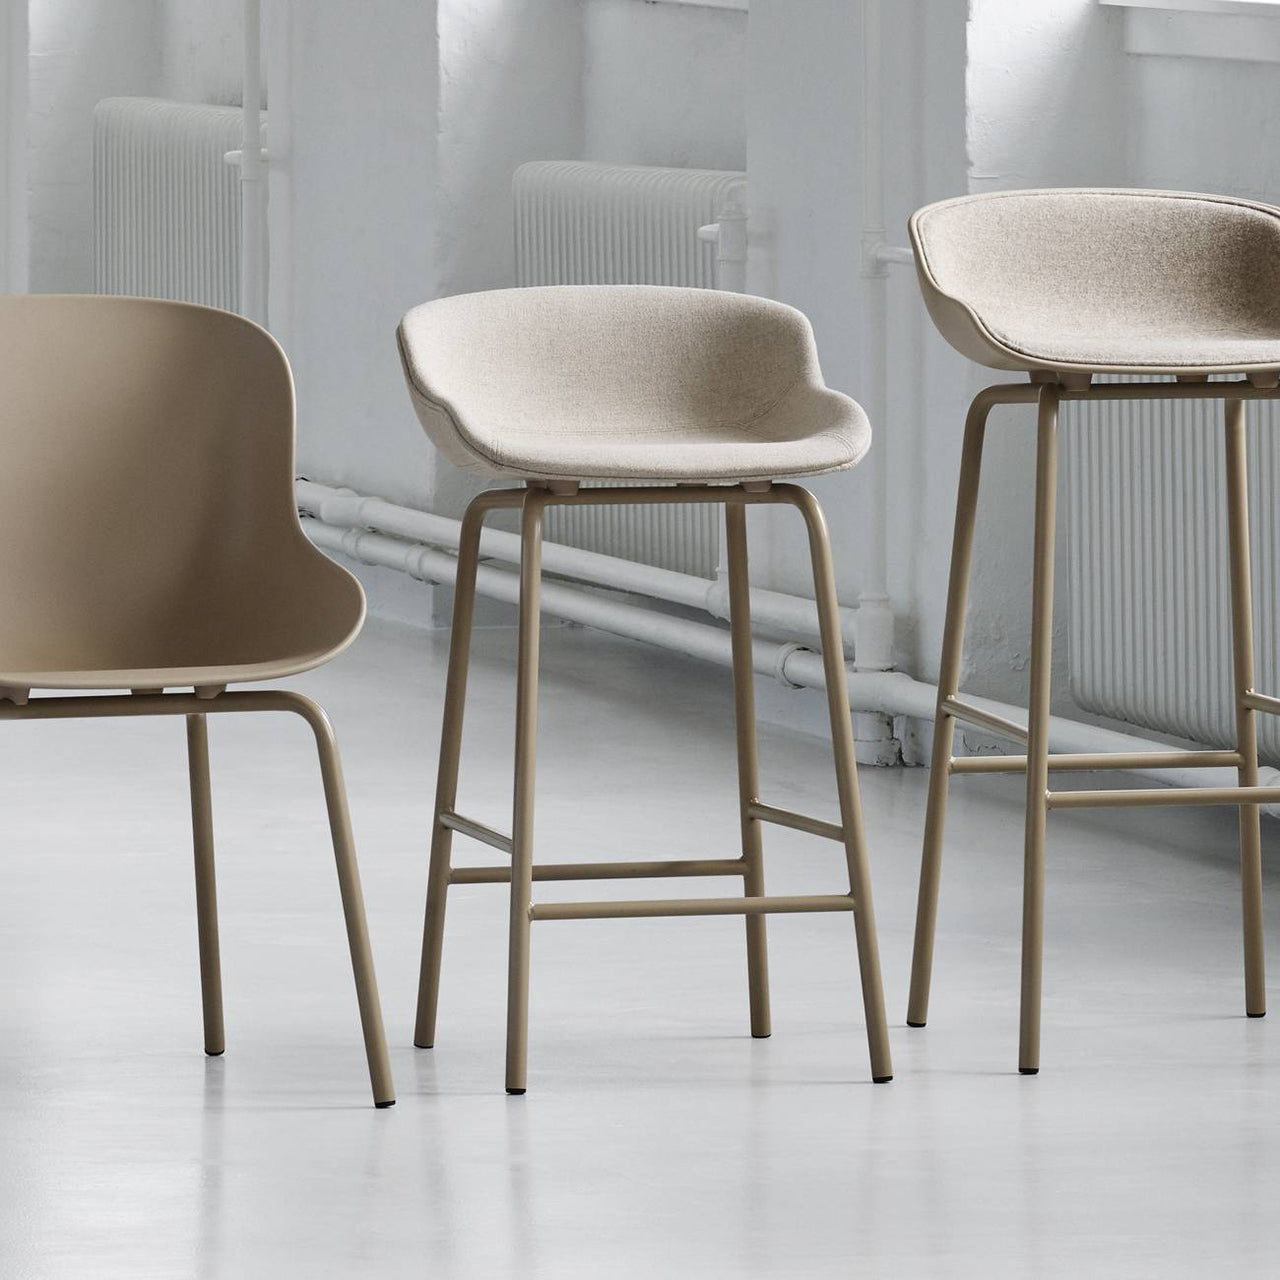 Hyg Bar + Counter stool: Fully Upholstered